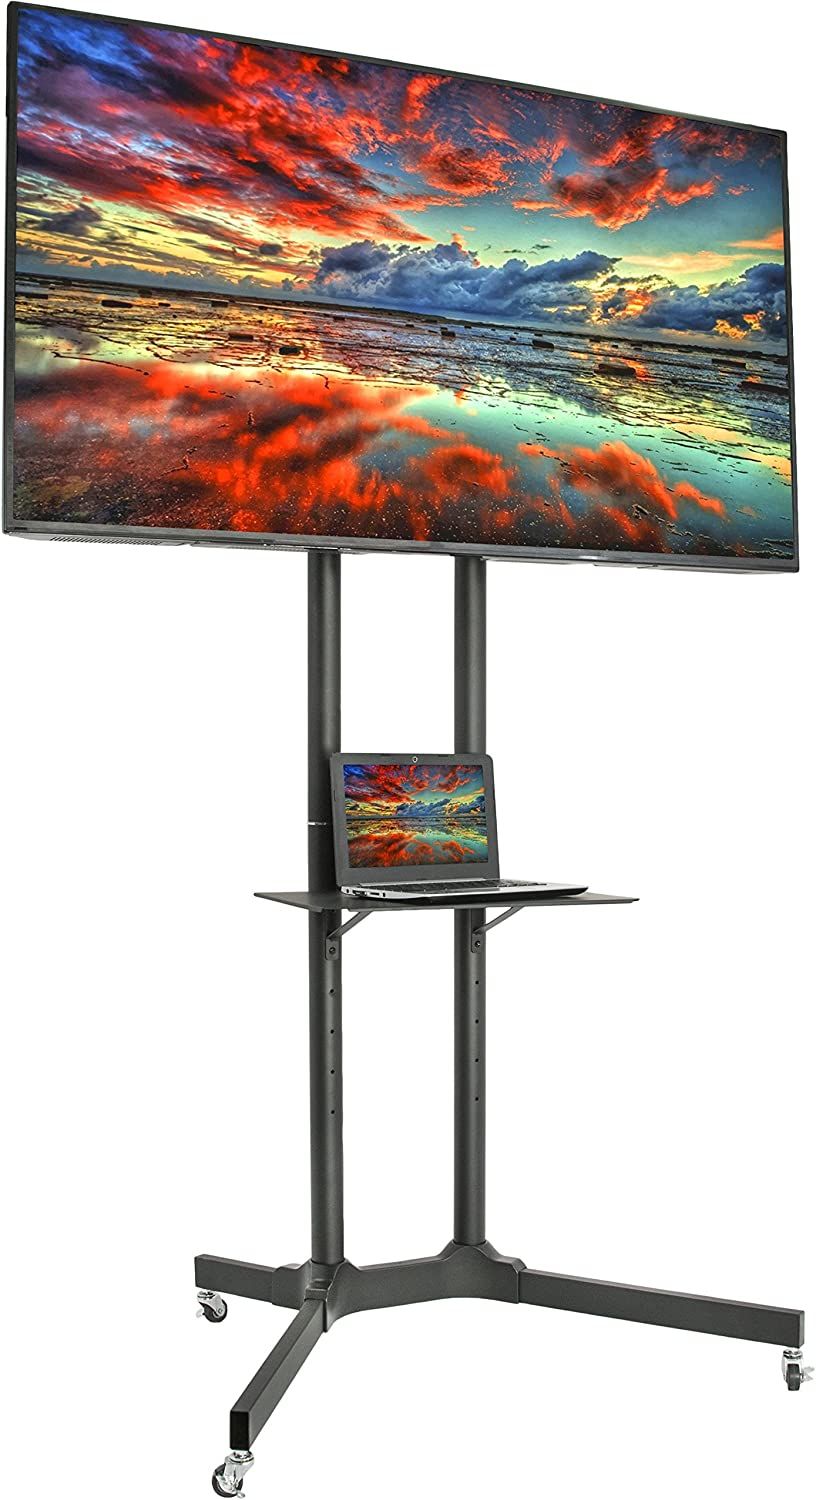 VIVO Mobile TV Cart for 32-65 inch LCD LED Plasma Flat Panel Screen TVs up to 110 lbs, Pro Height Adjustable Rolling Black Stand with Laptop Shelf & Locking Wheels - Max VESA 600x400 (STAND-TV03E) : Office Products